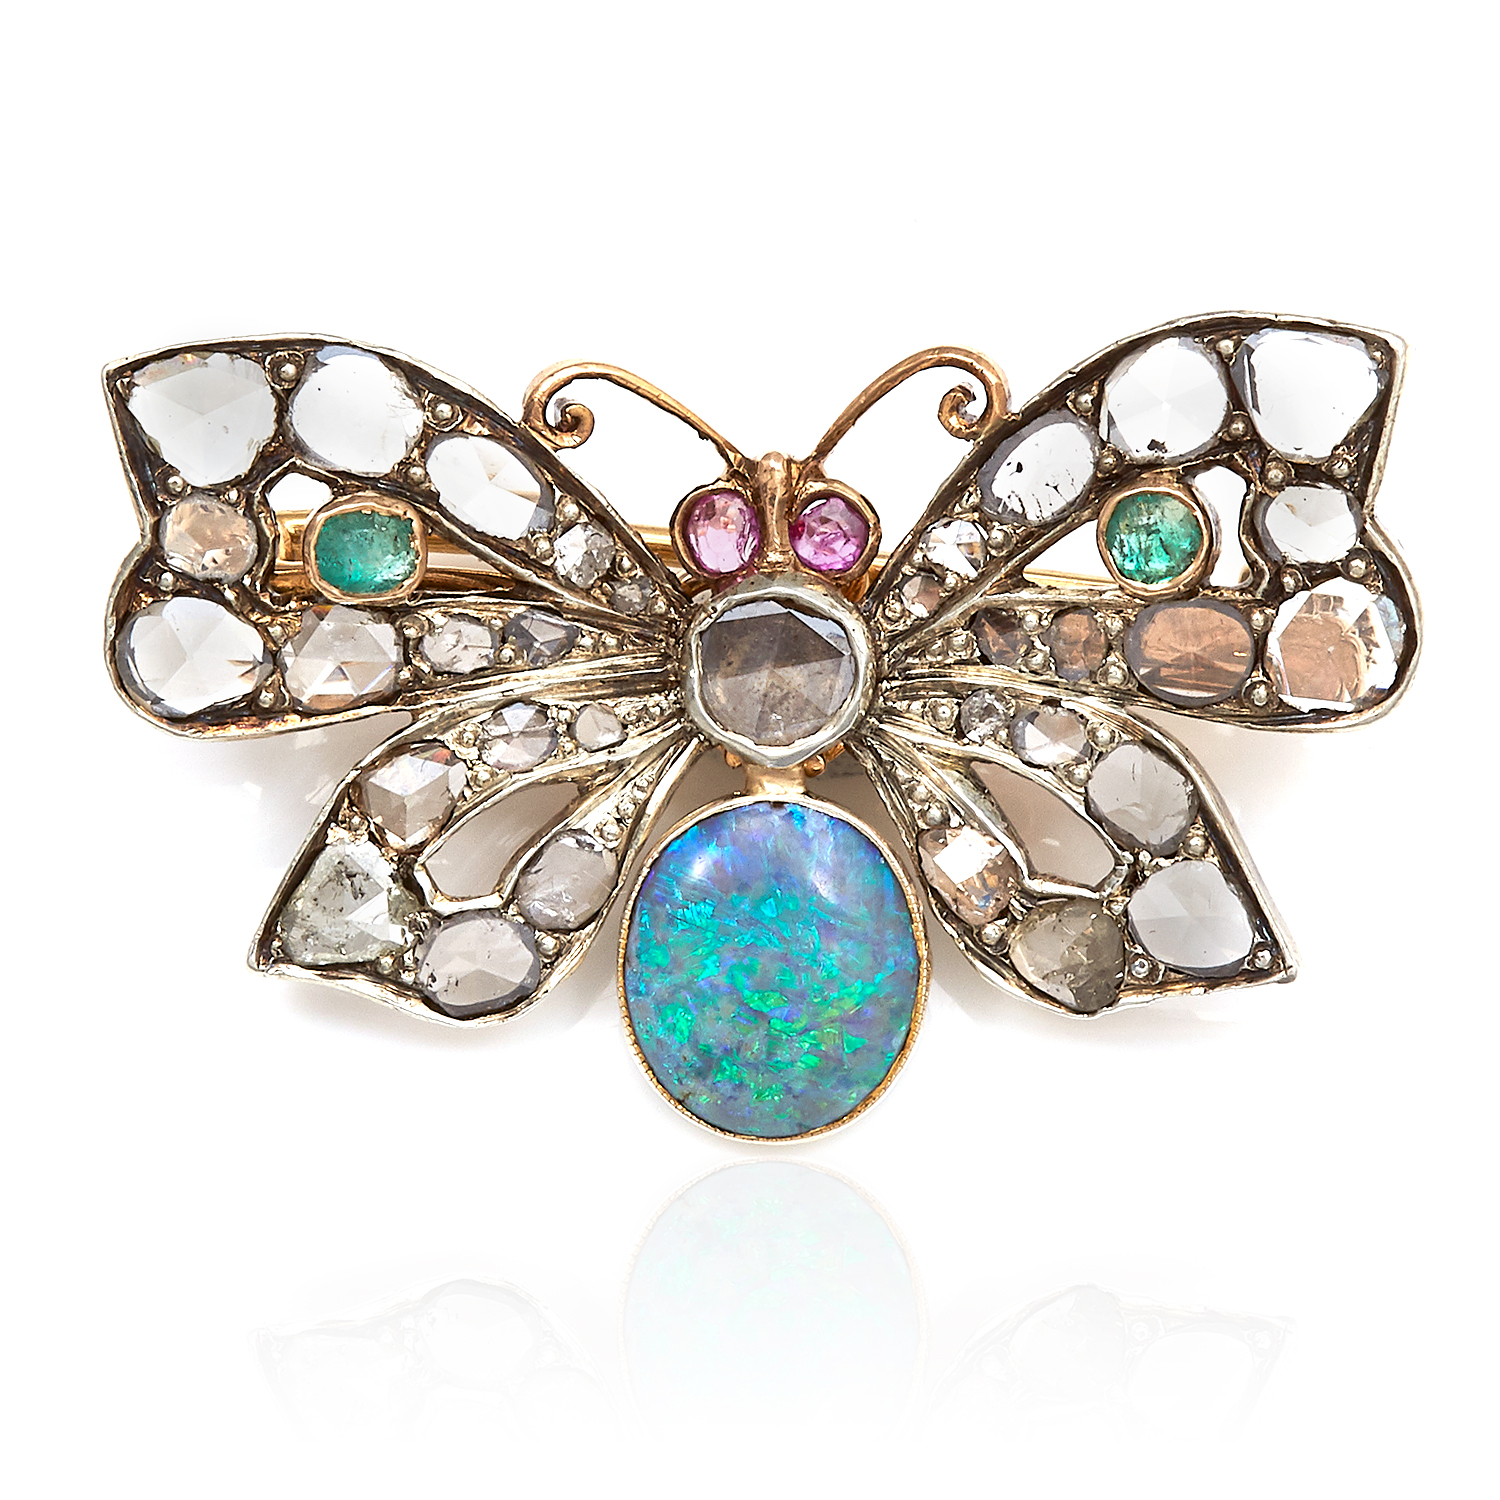 Los 29 - A VICTORIAN OPAL, DIAMOND, EMERALD AND RUBY BUTTERFLY BROOCH in yellow gold, set with a central